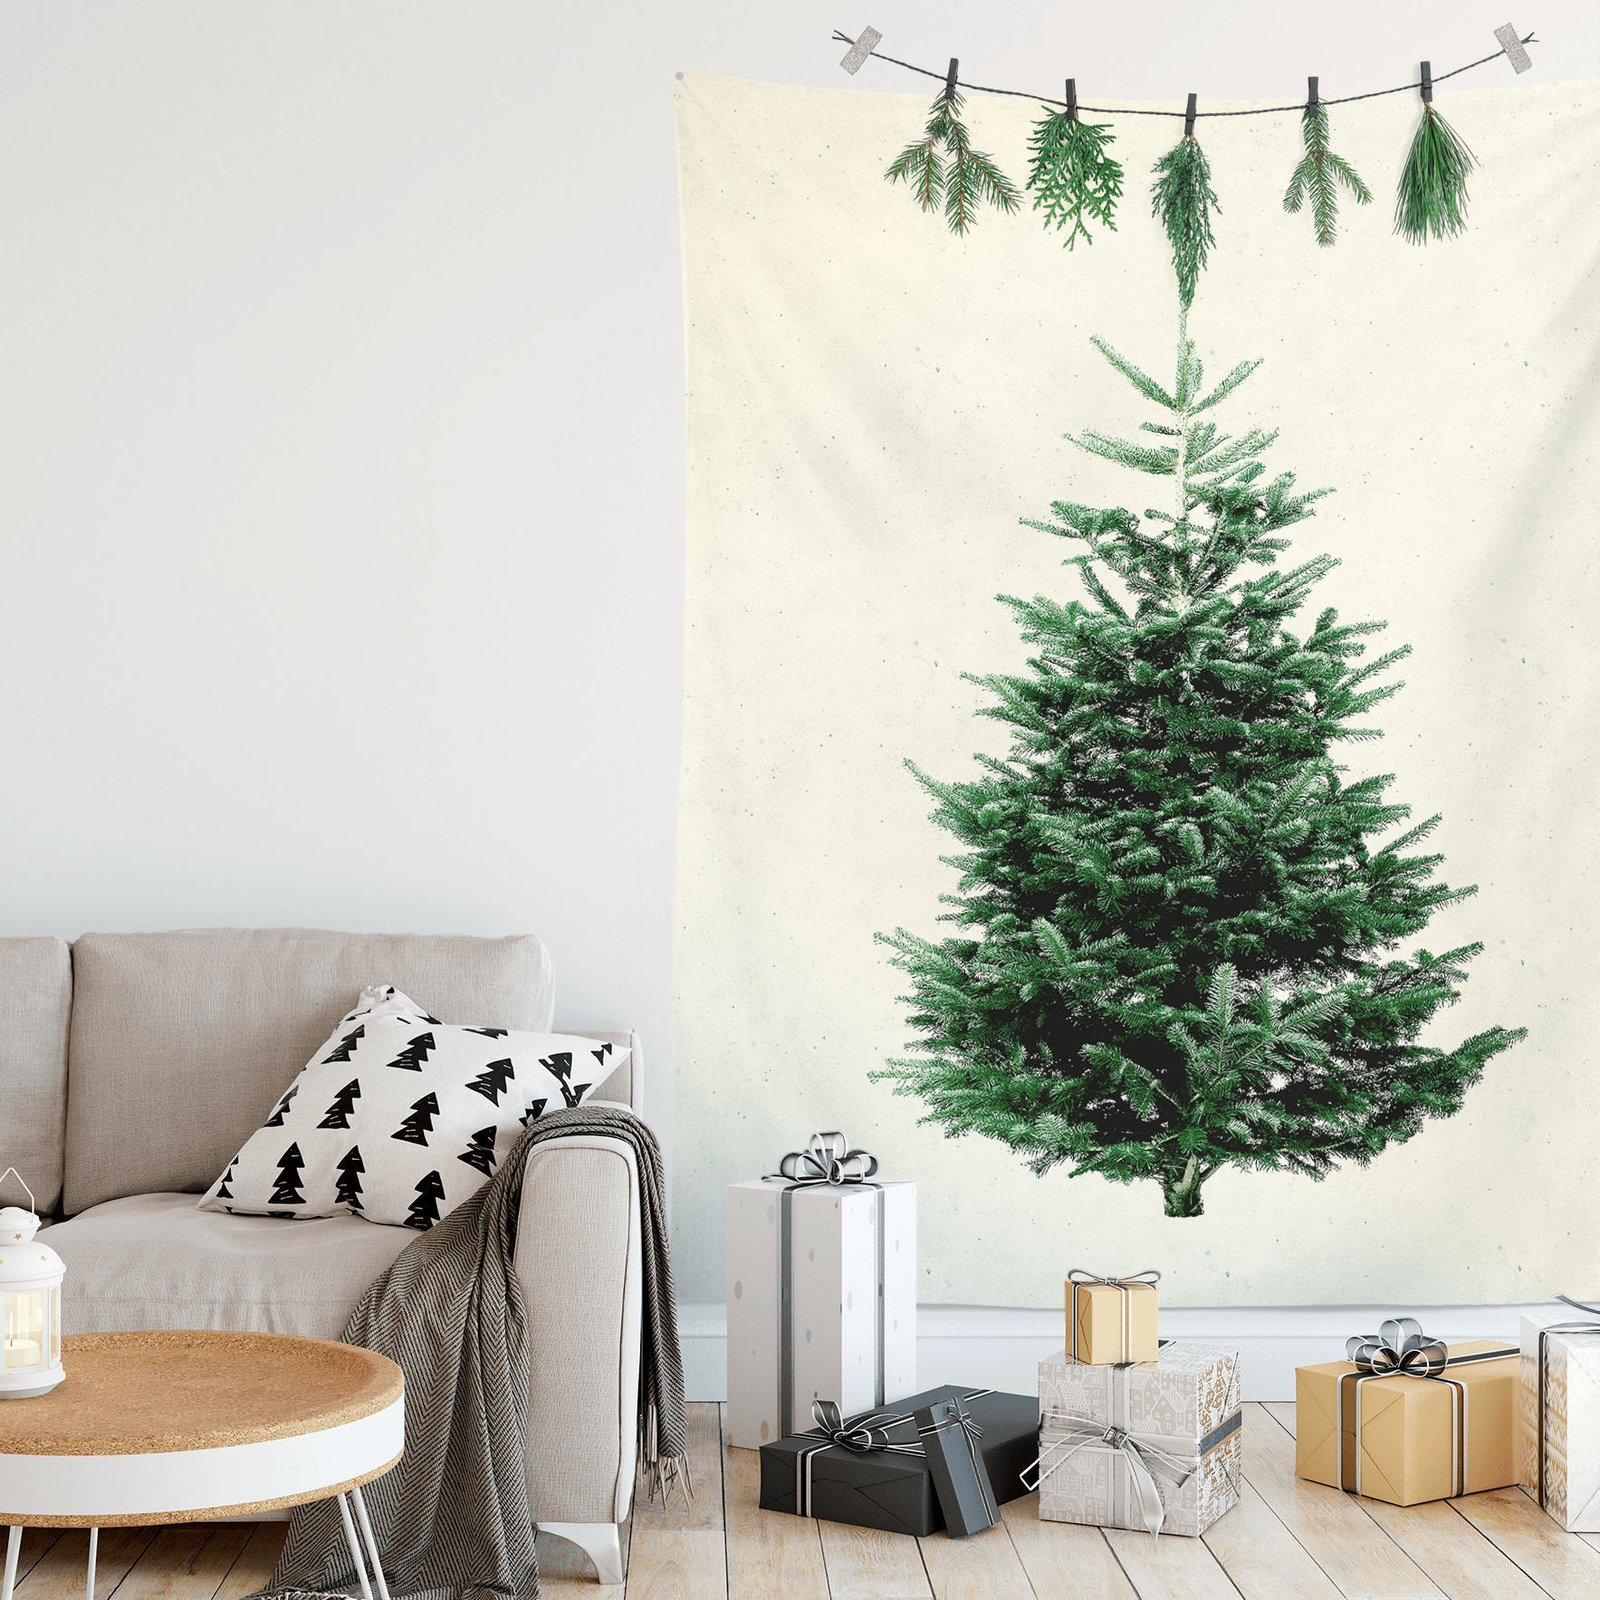 10 Festive Alternatives to the Traditional Christmas Tree - Dwell